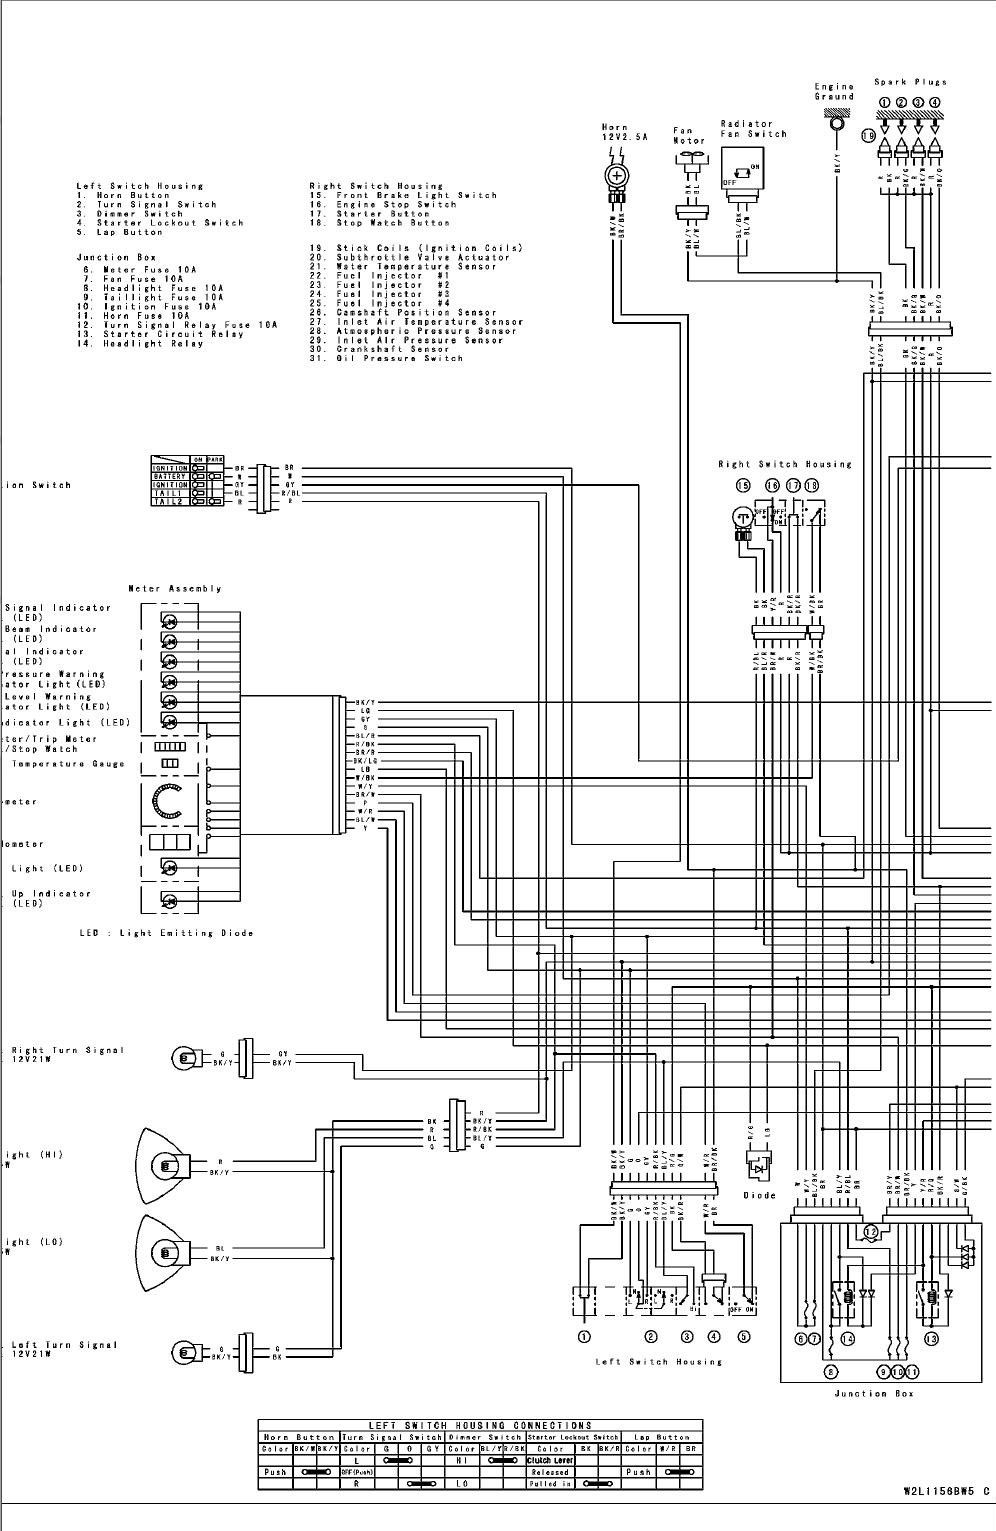 2003 zx600 wiring diagram